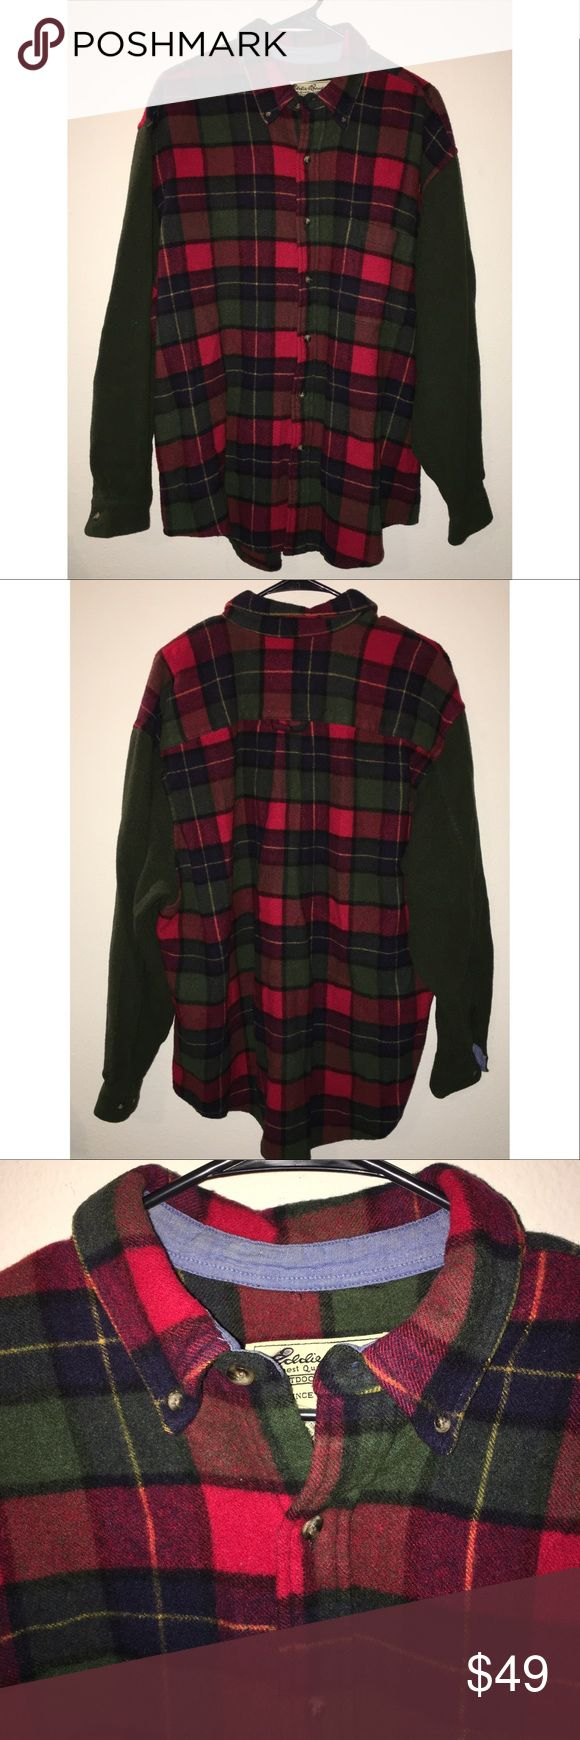 EDDIE BAUER Outdoor Outfitters Wool Plaid Shirt XL This is an EDDIE BAUER Outdoor Outfitters Wool Plaid button Shirt in a sz XL, red and green plaid with hunter green sleeves, gently used condition! I ship fast! Happy poshing friends! Eddie Bauer Shirts Casual Button Down Shirts